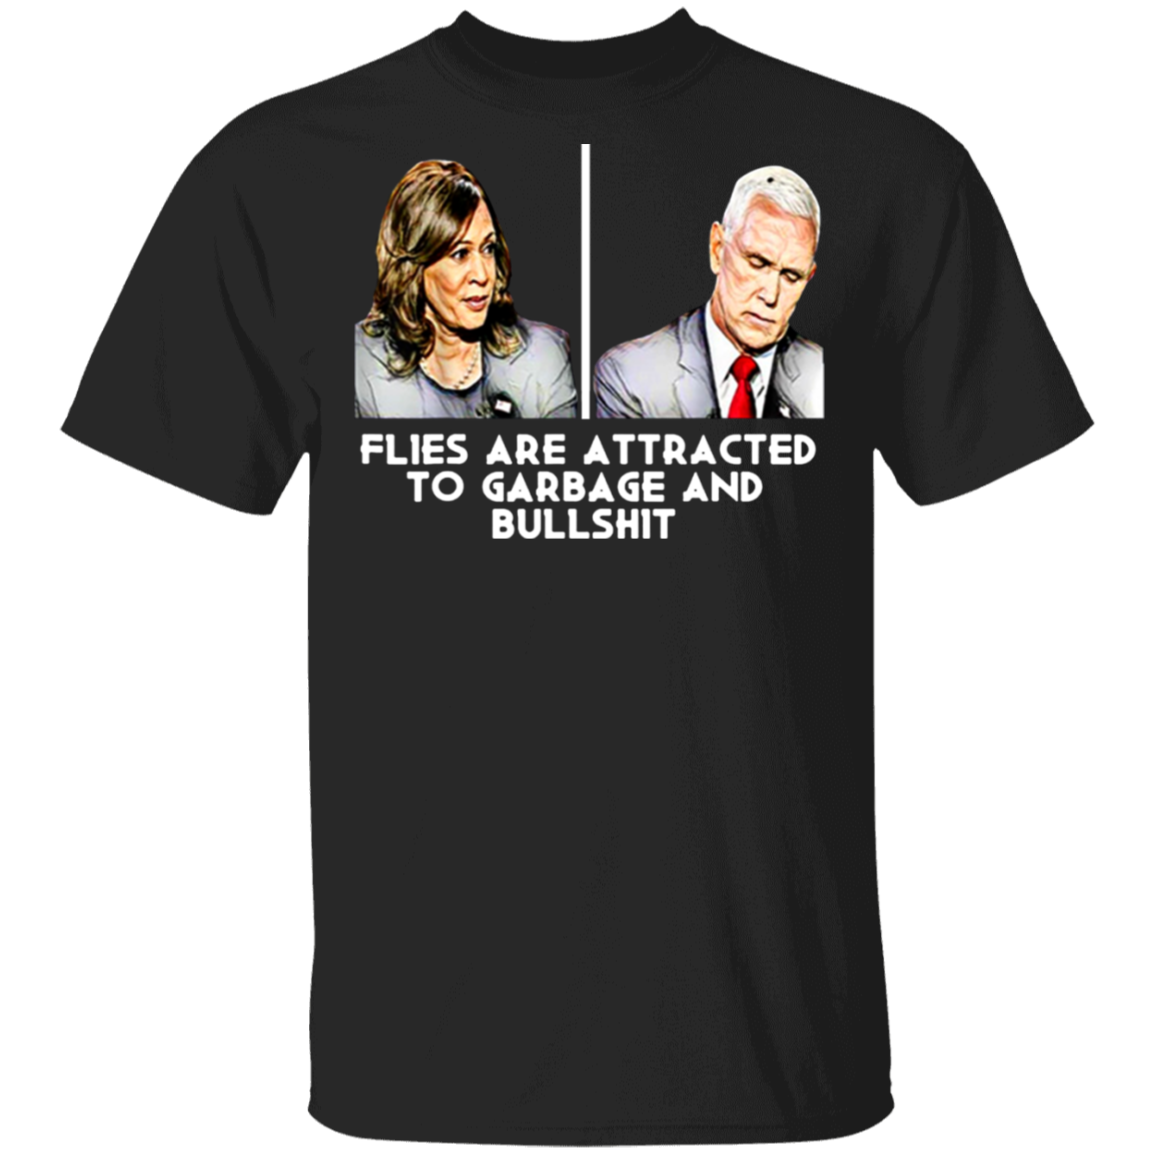 Pence Fly T-Shirt Flies Are Attracted To Garbage And Bullshit Shirt Vice President Debate